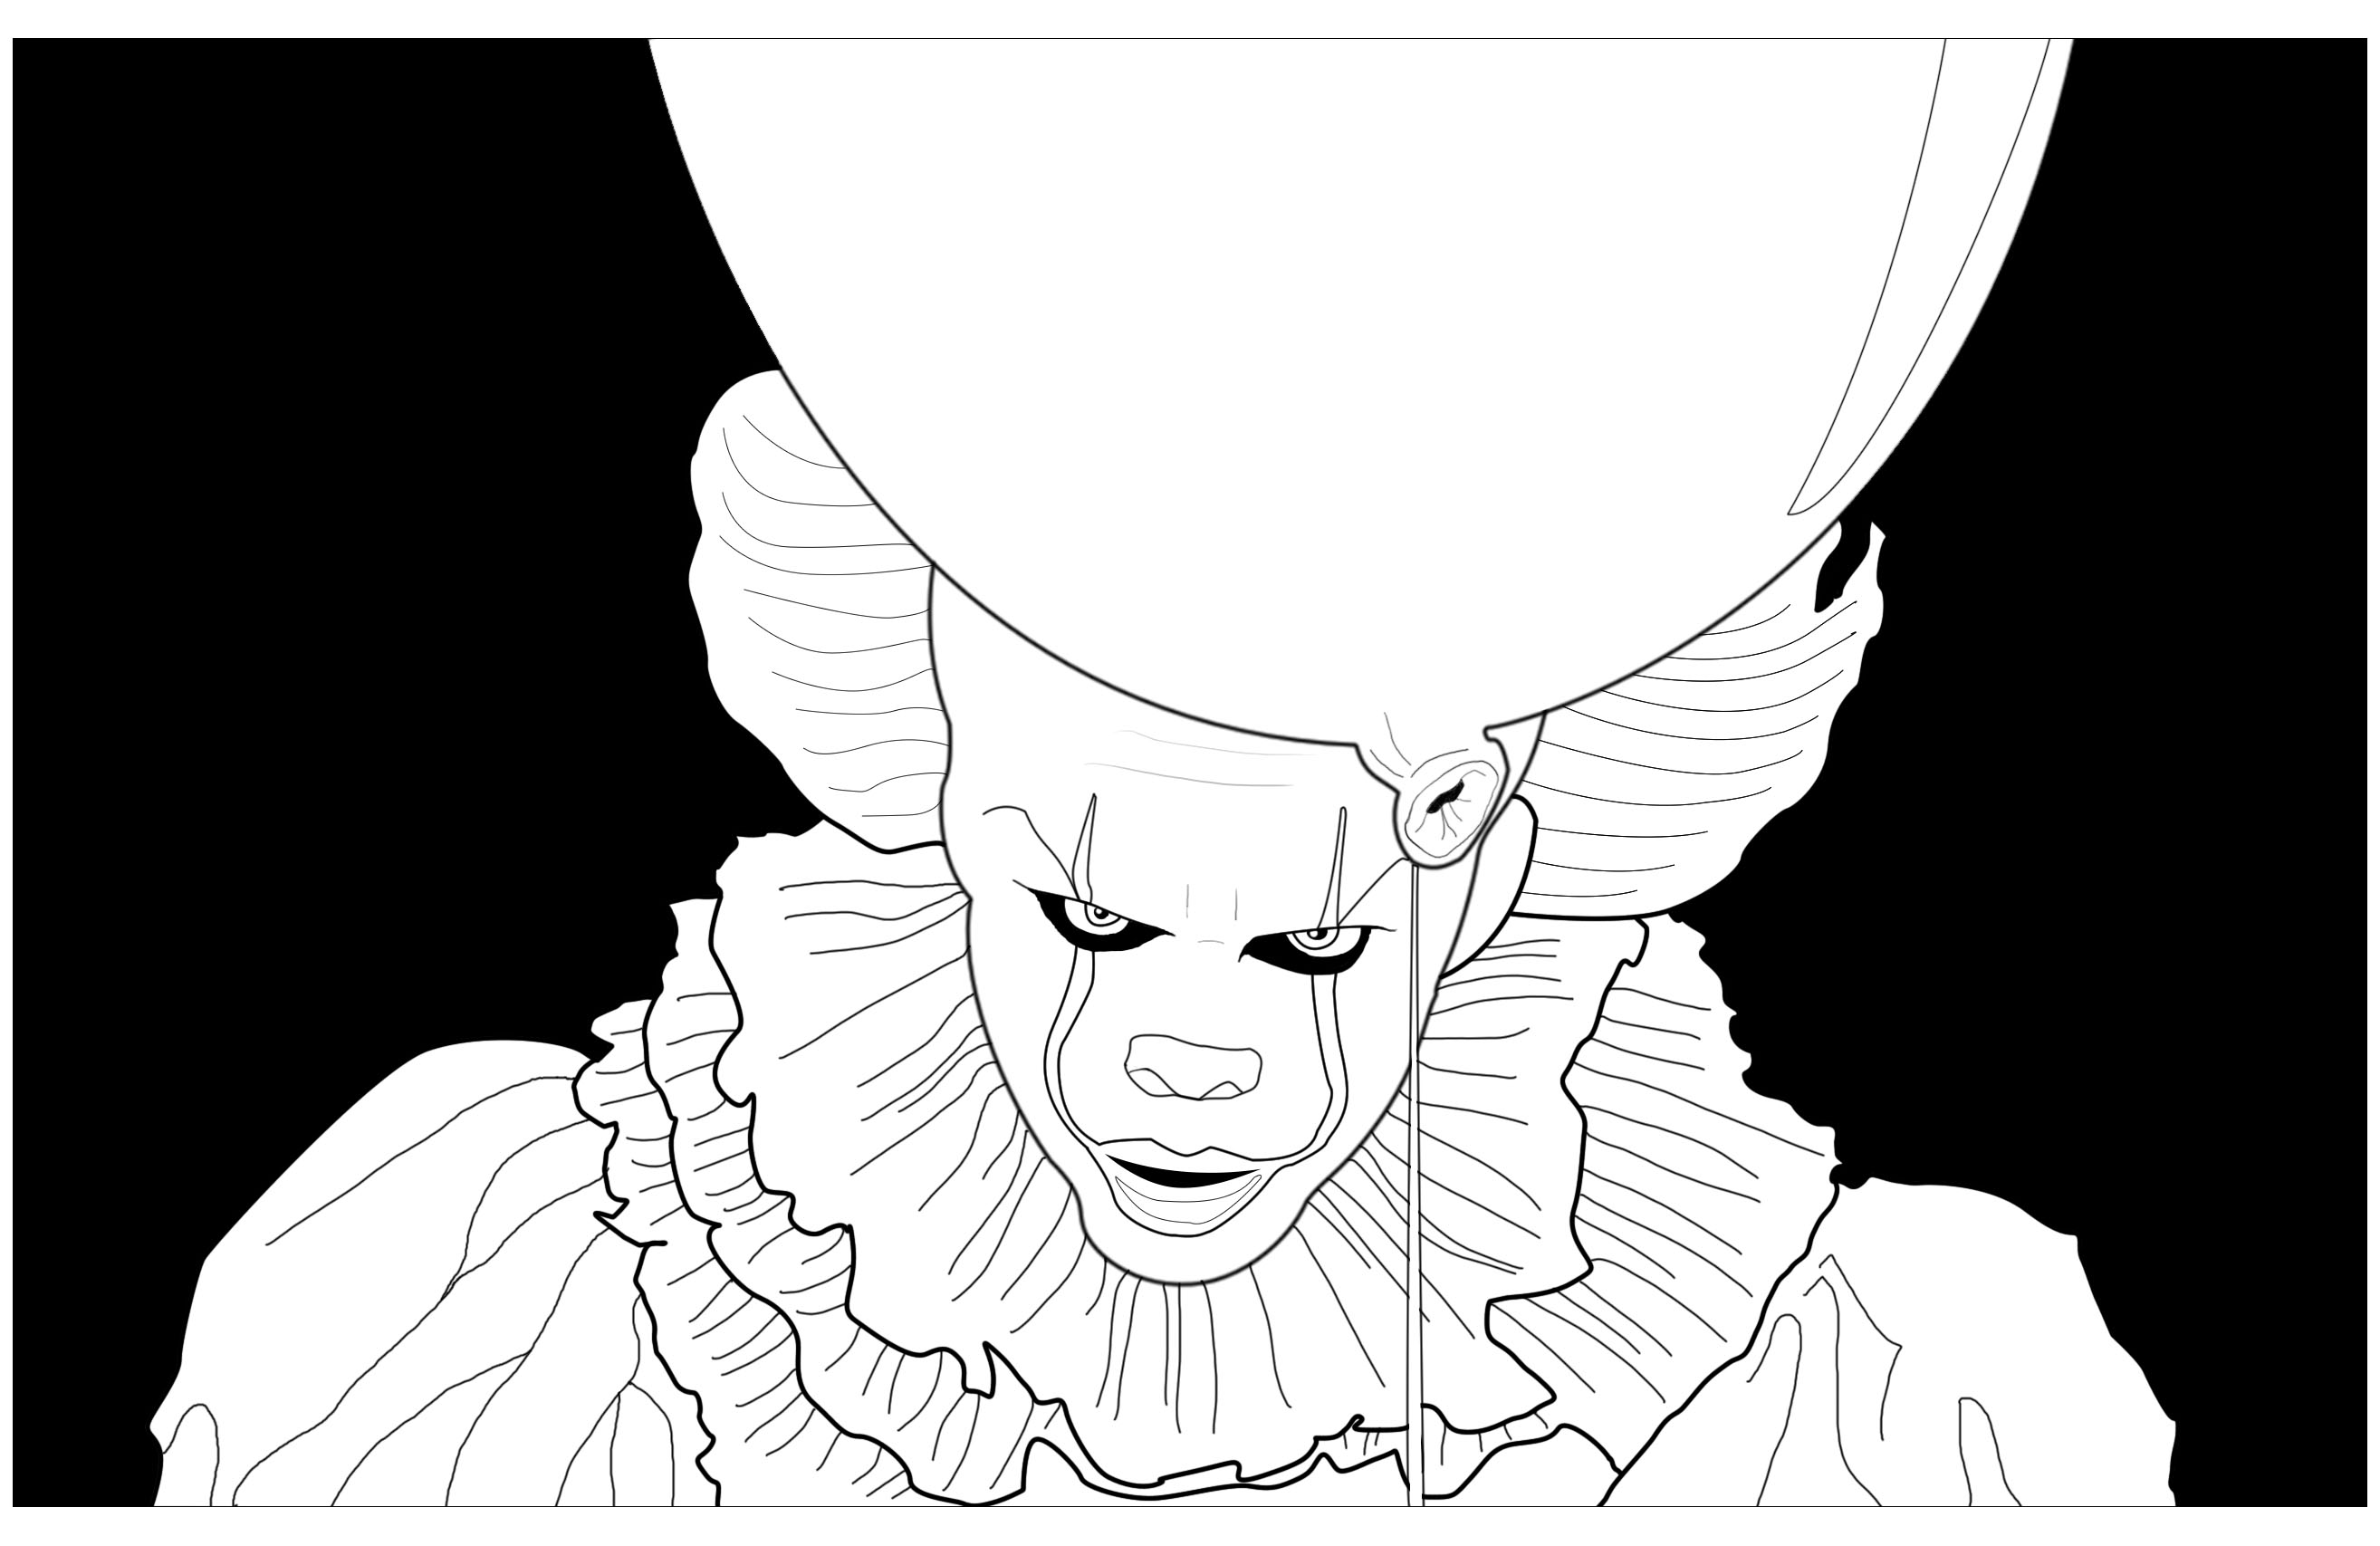 Coloriage Clown Ca.Clown Ca Grippe Sous Fond Noir Halloween Coloriages